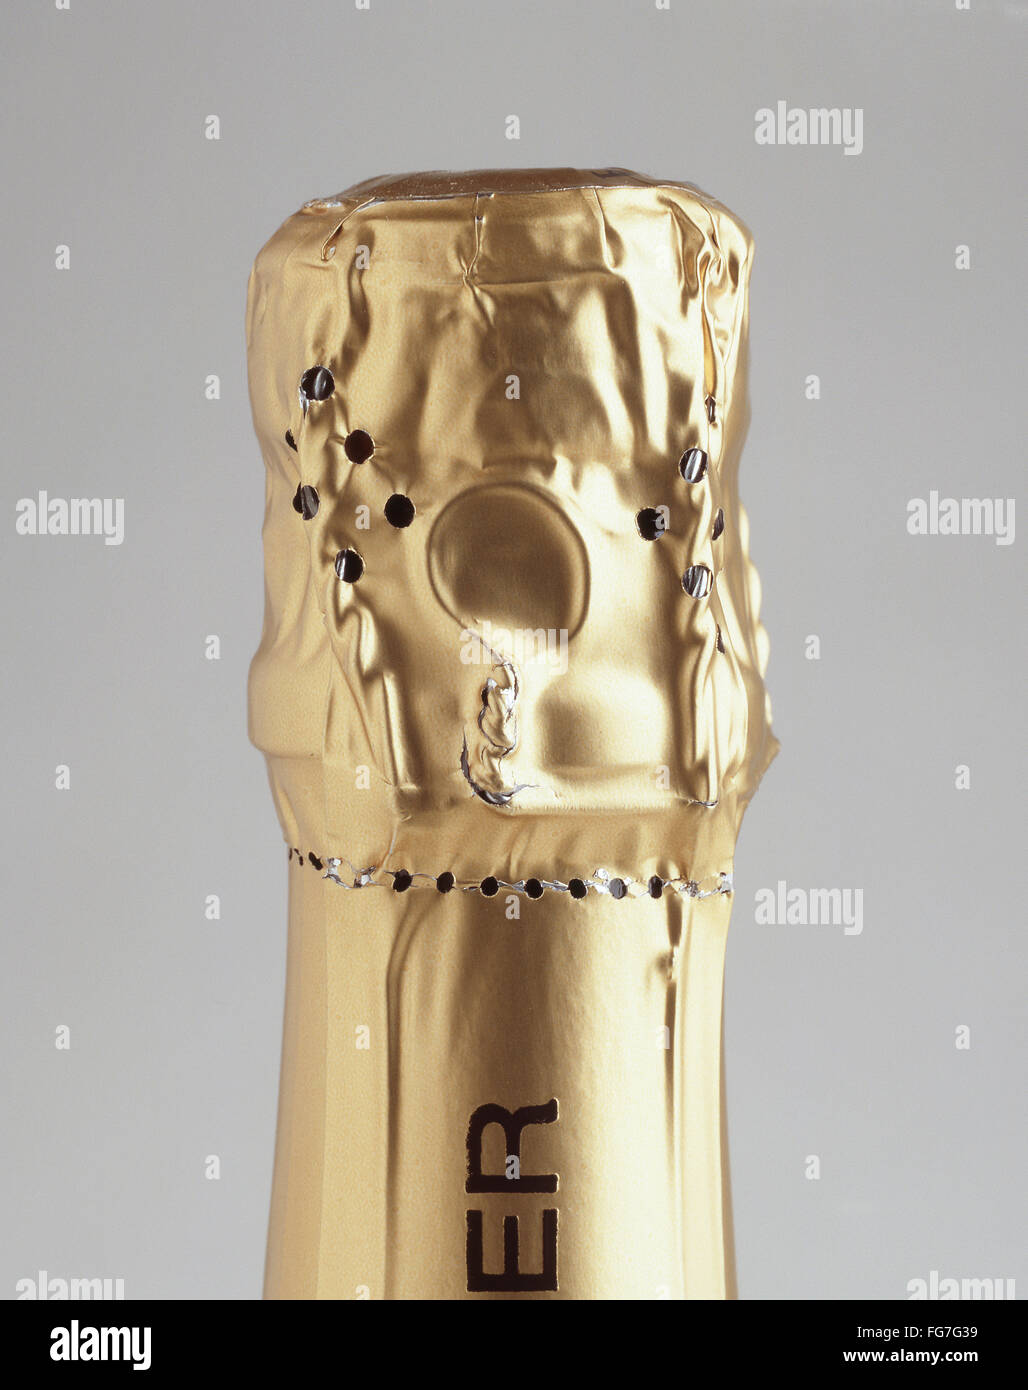 Top of champagne bottle with golden foil in studio setting, London, England, United Kingdom - Stock Image